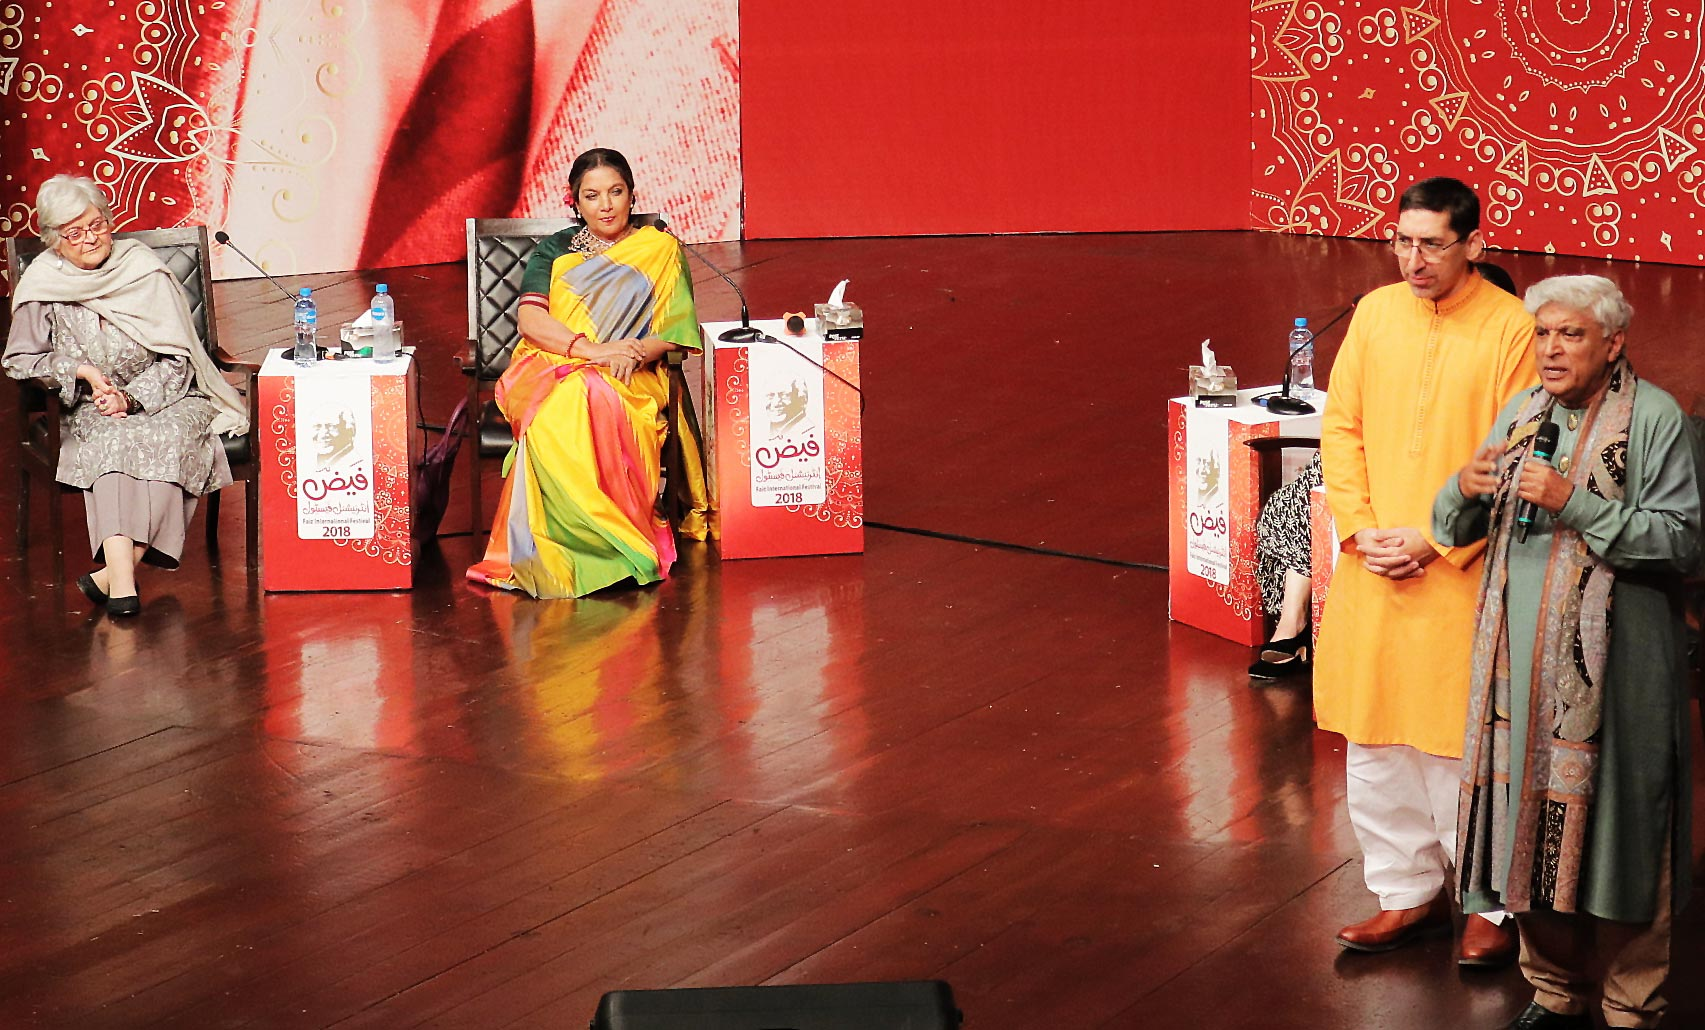 (L-R) Saleema Hashmi, Shabana Azmi, Adeel Hashmi and Javed Akhtar - Faiz International Festival 2018